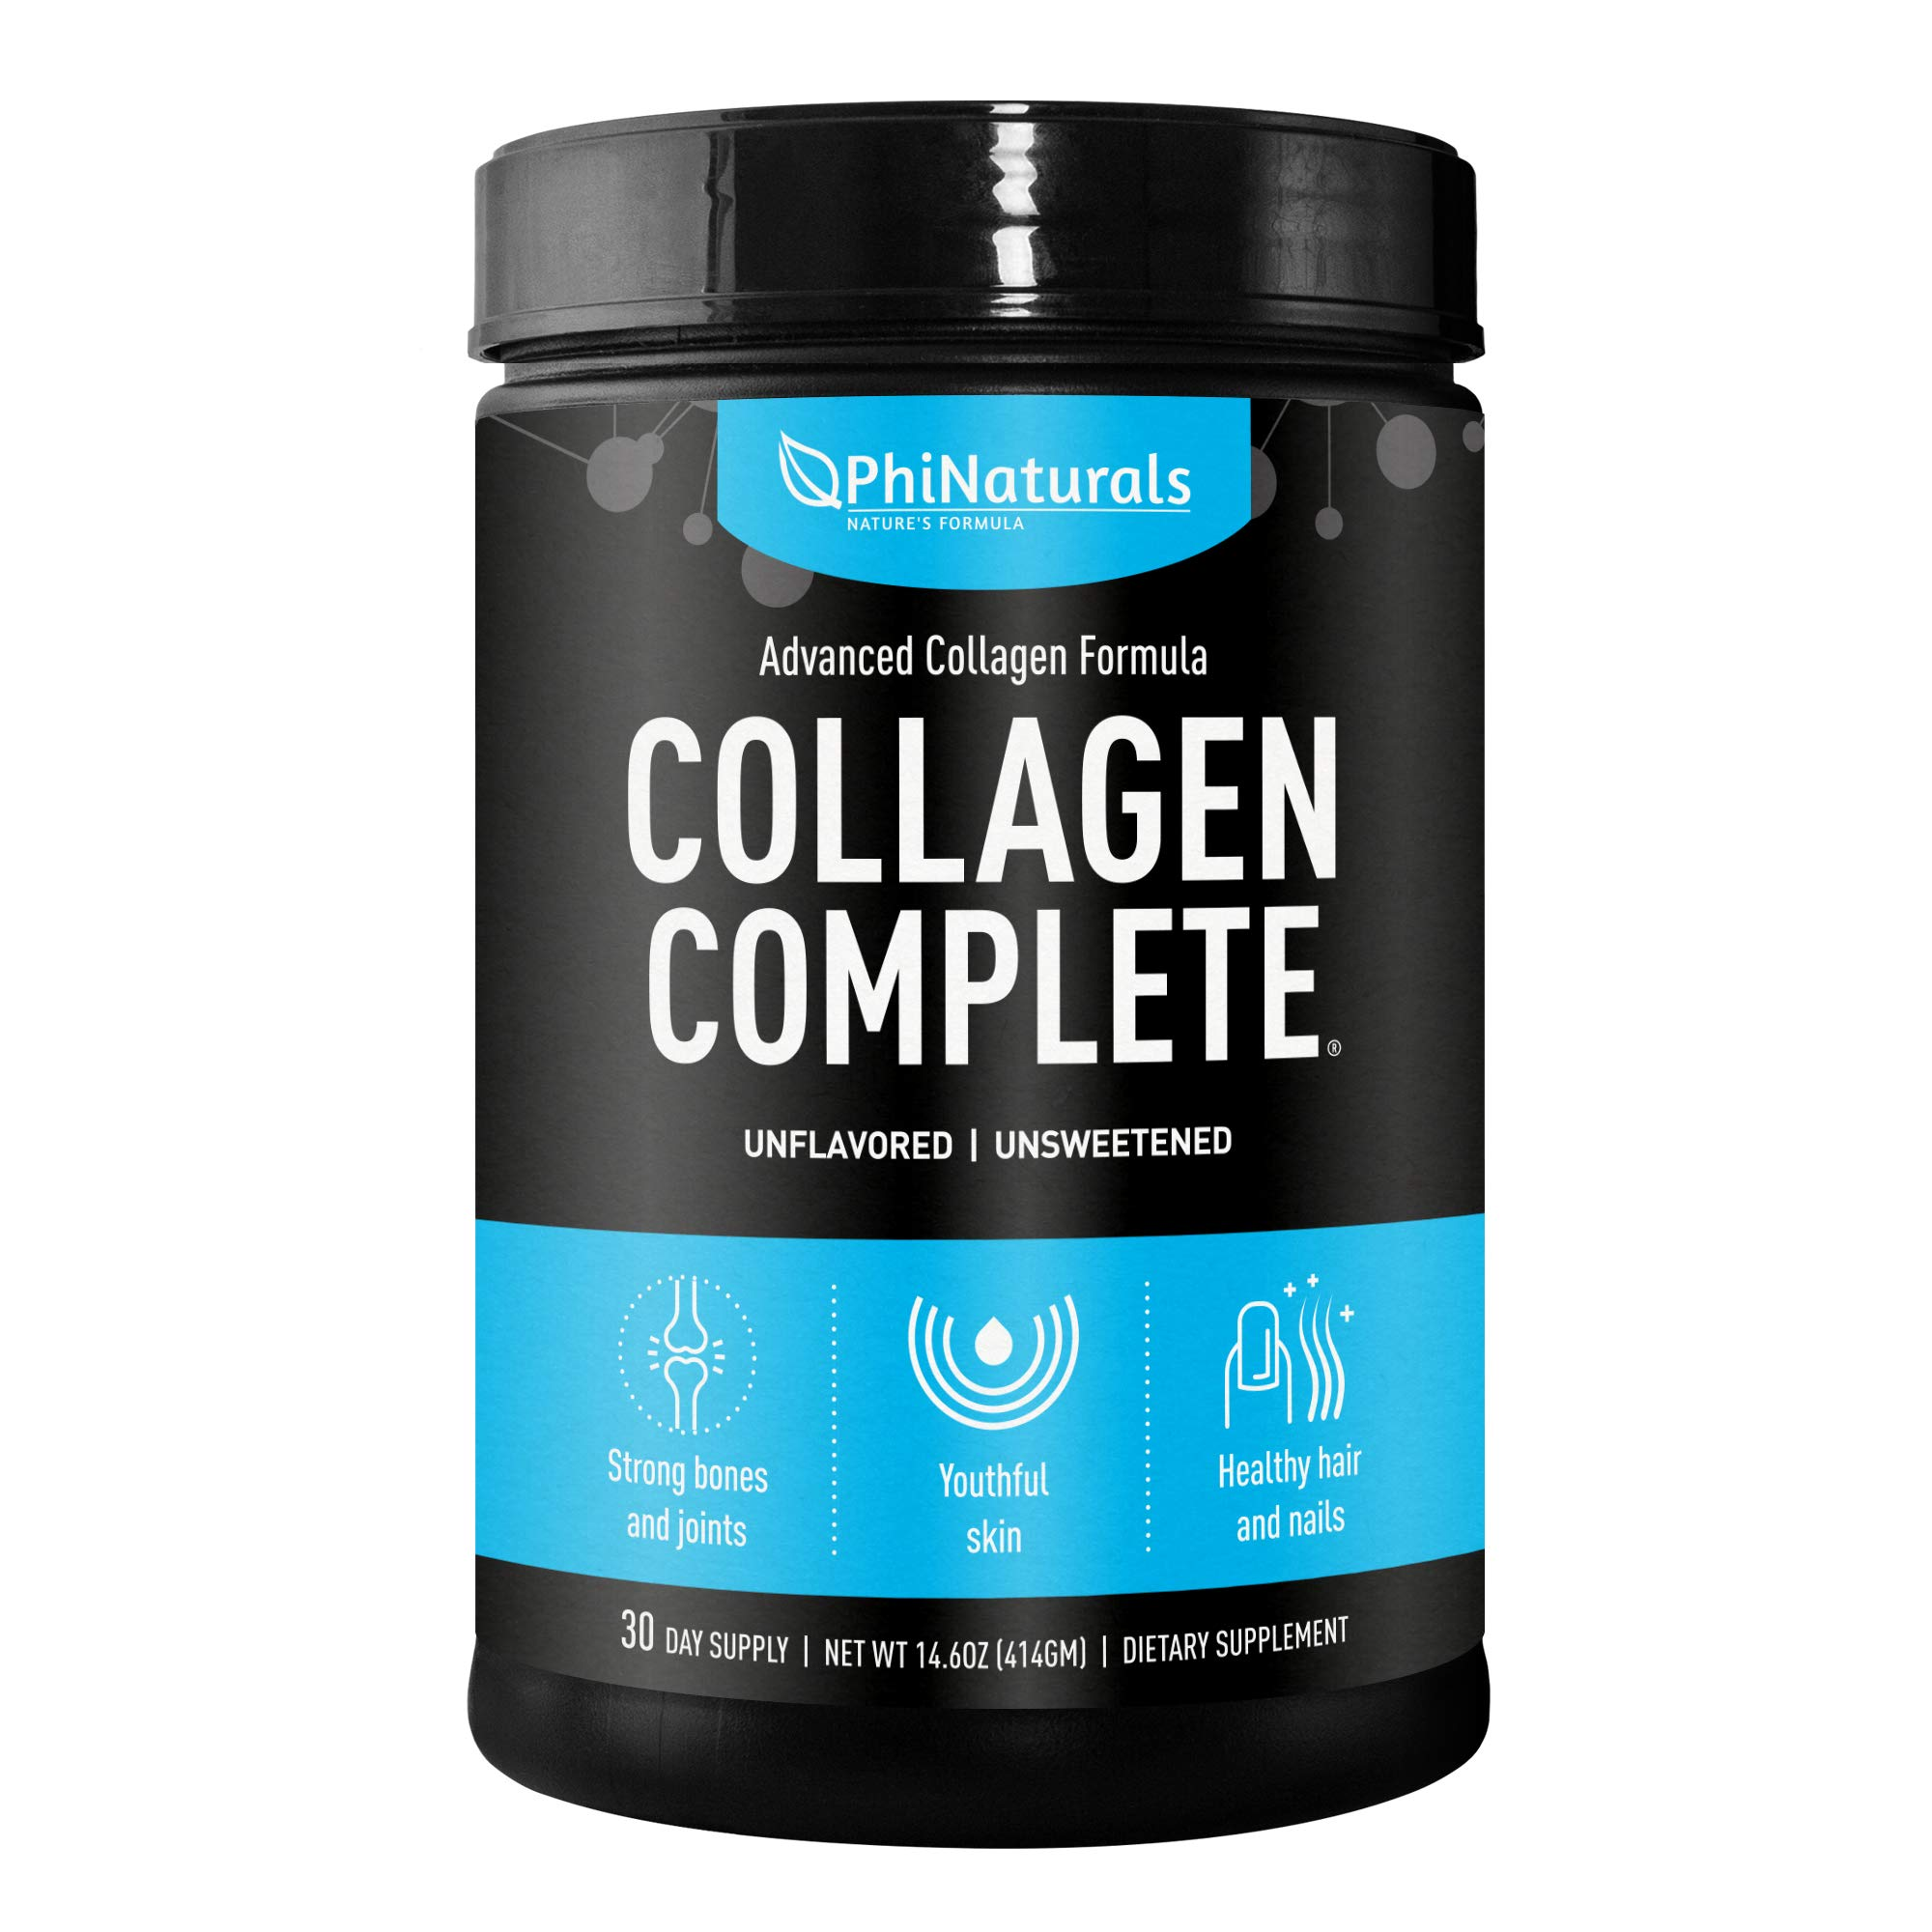 Collagen Complete Hydrolyzed Protein Powder - Anti-Aging Peptides - Organic non-GMO Supplement for Beauty - Skin Joints Hair Nails [Unflavored]